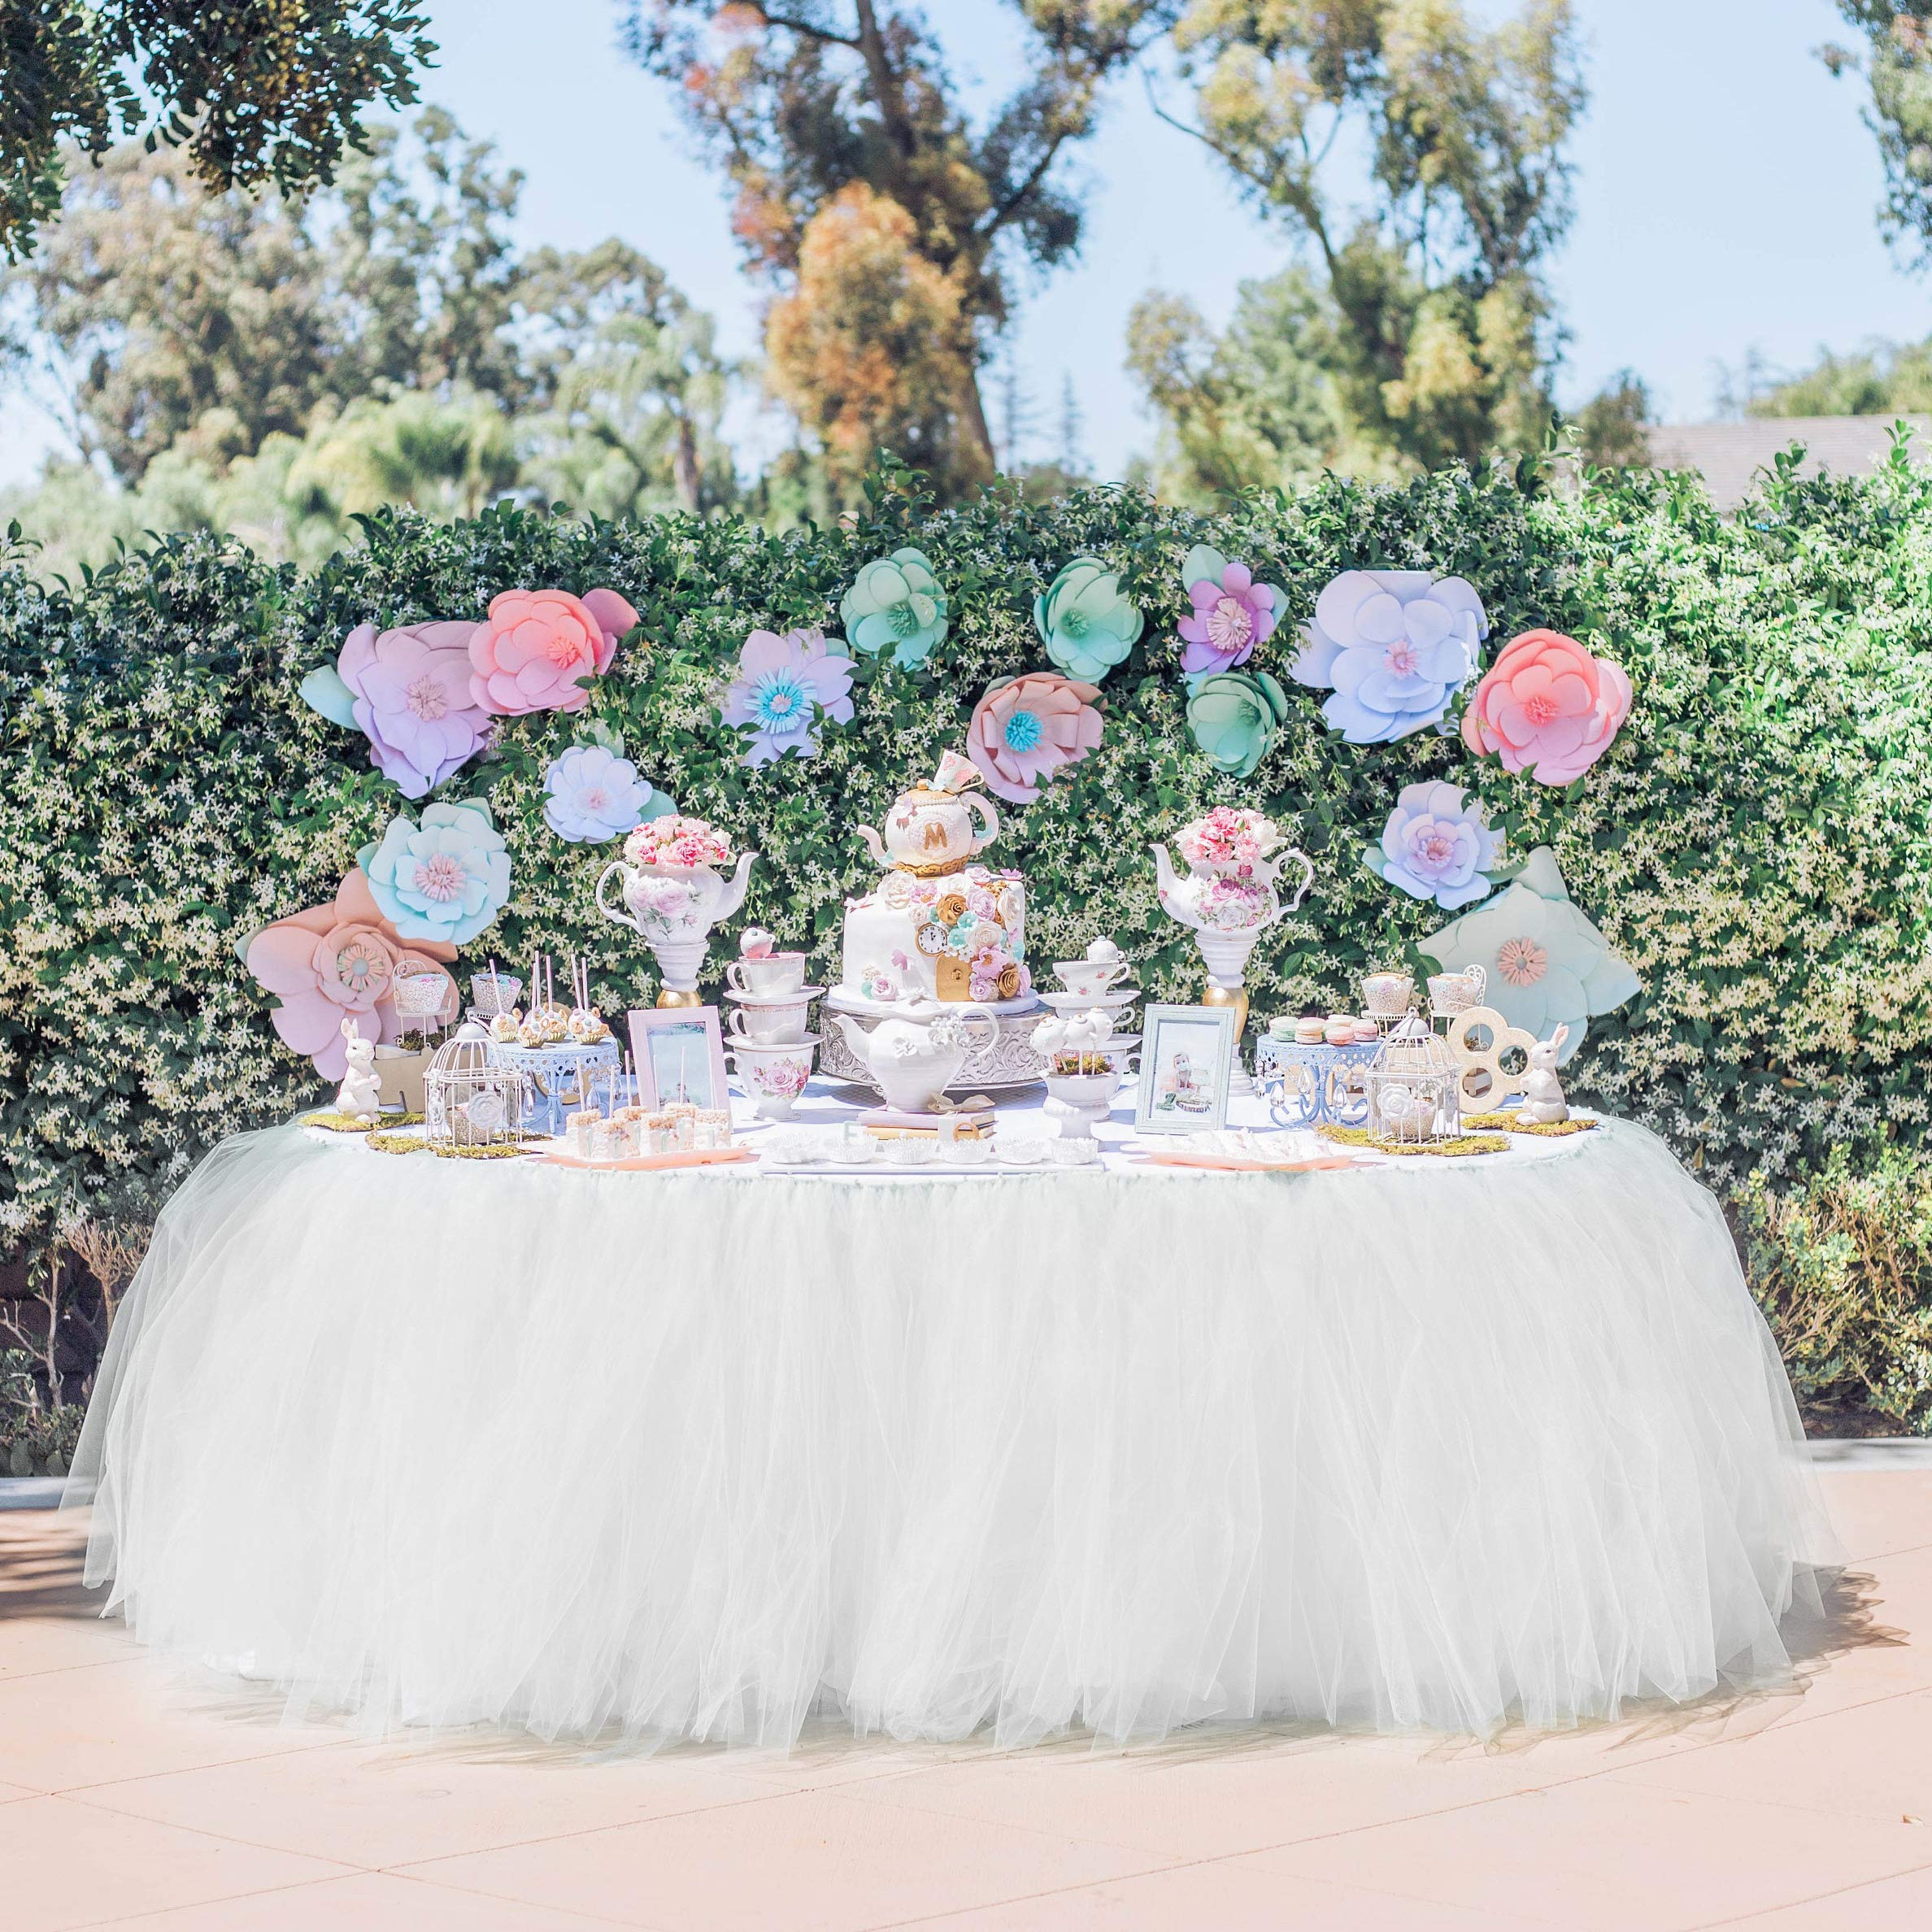 Table Skirt Tutu Christmas Decoration Wedding Tablecloth Fluffy Baby Shower Tableware Party&Home Christmas Decoration Handmade for Rectangle Table or Round Table (White, 9ft (L) x 30inch (H))